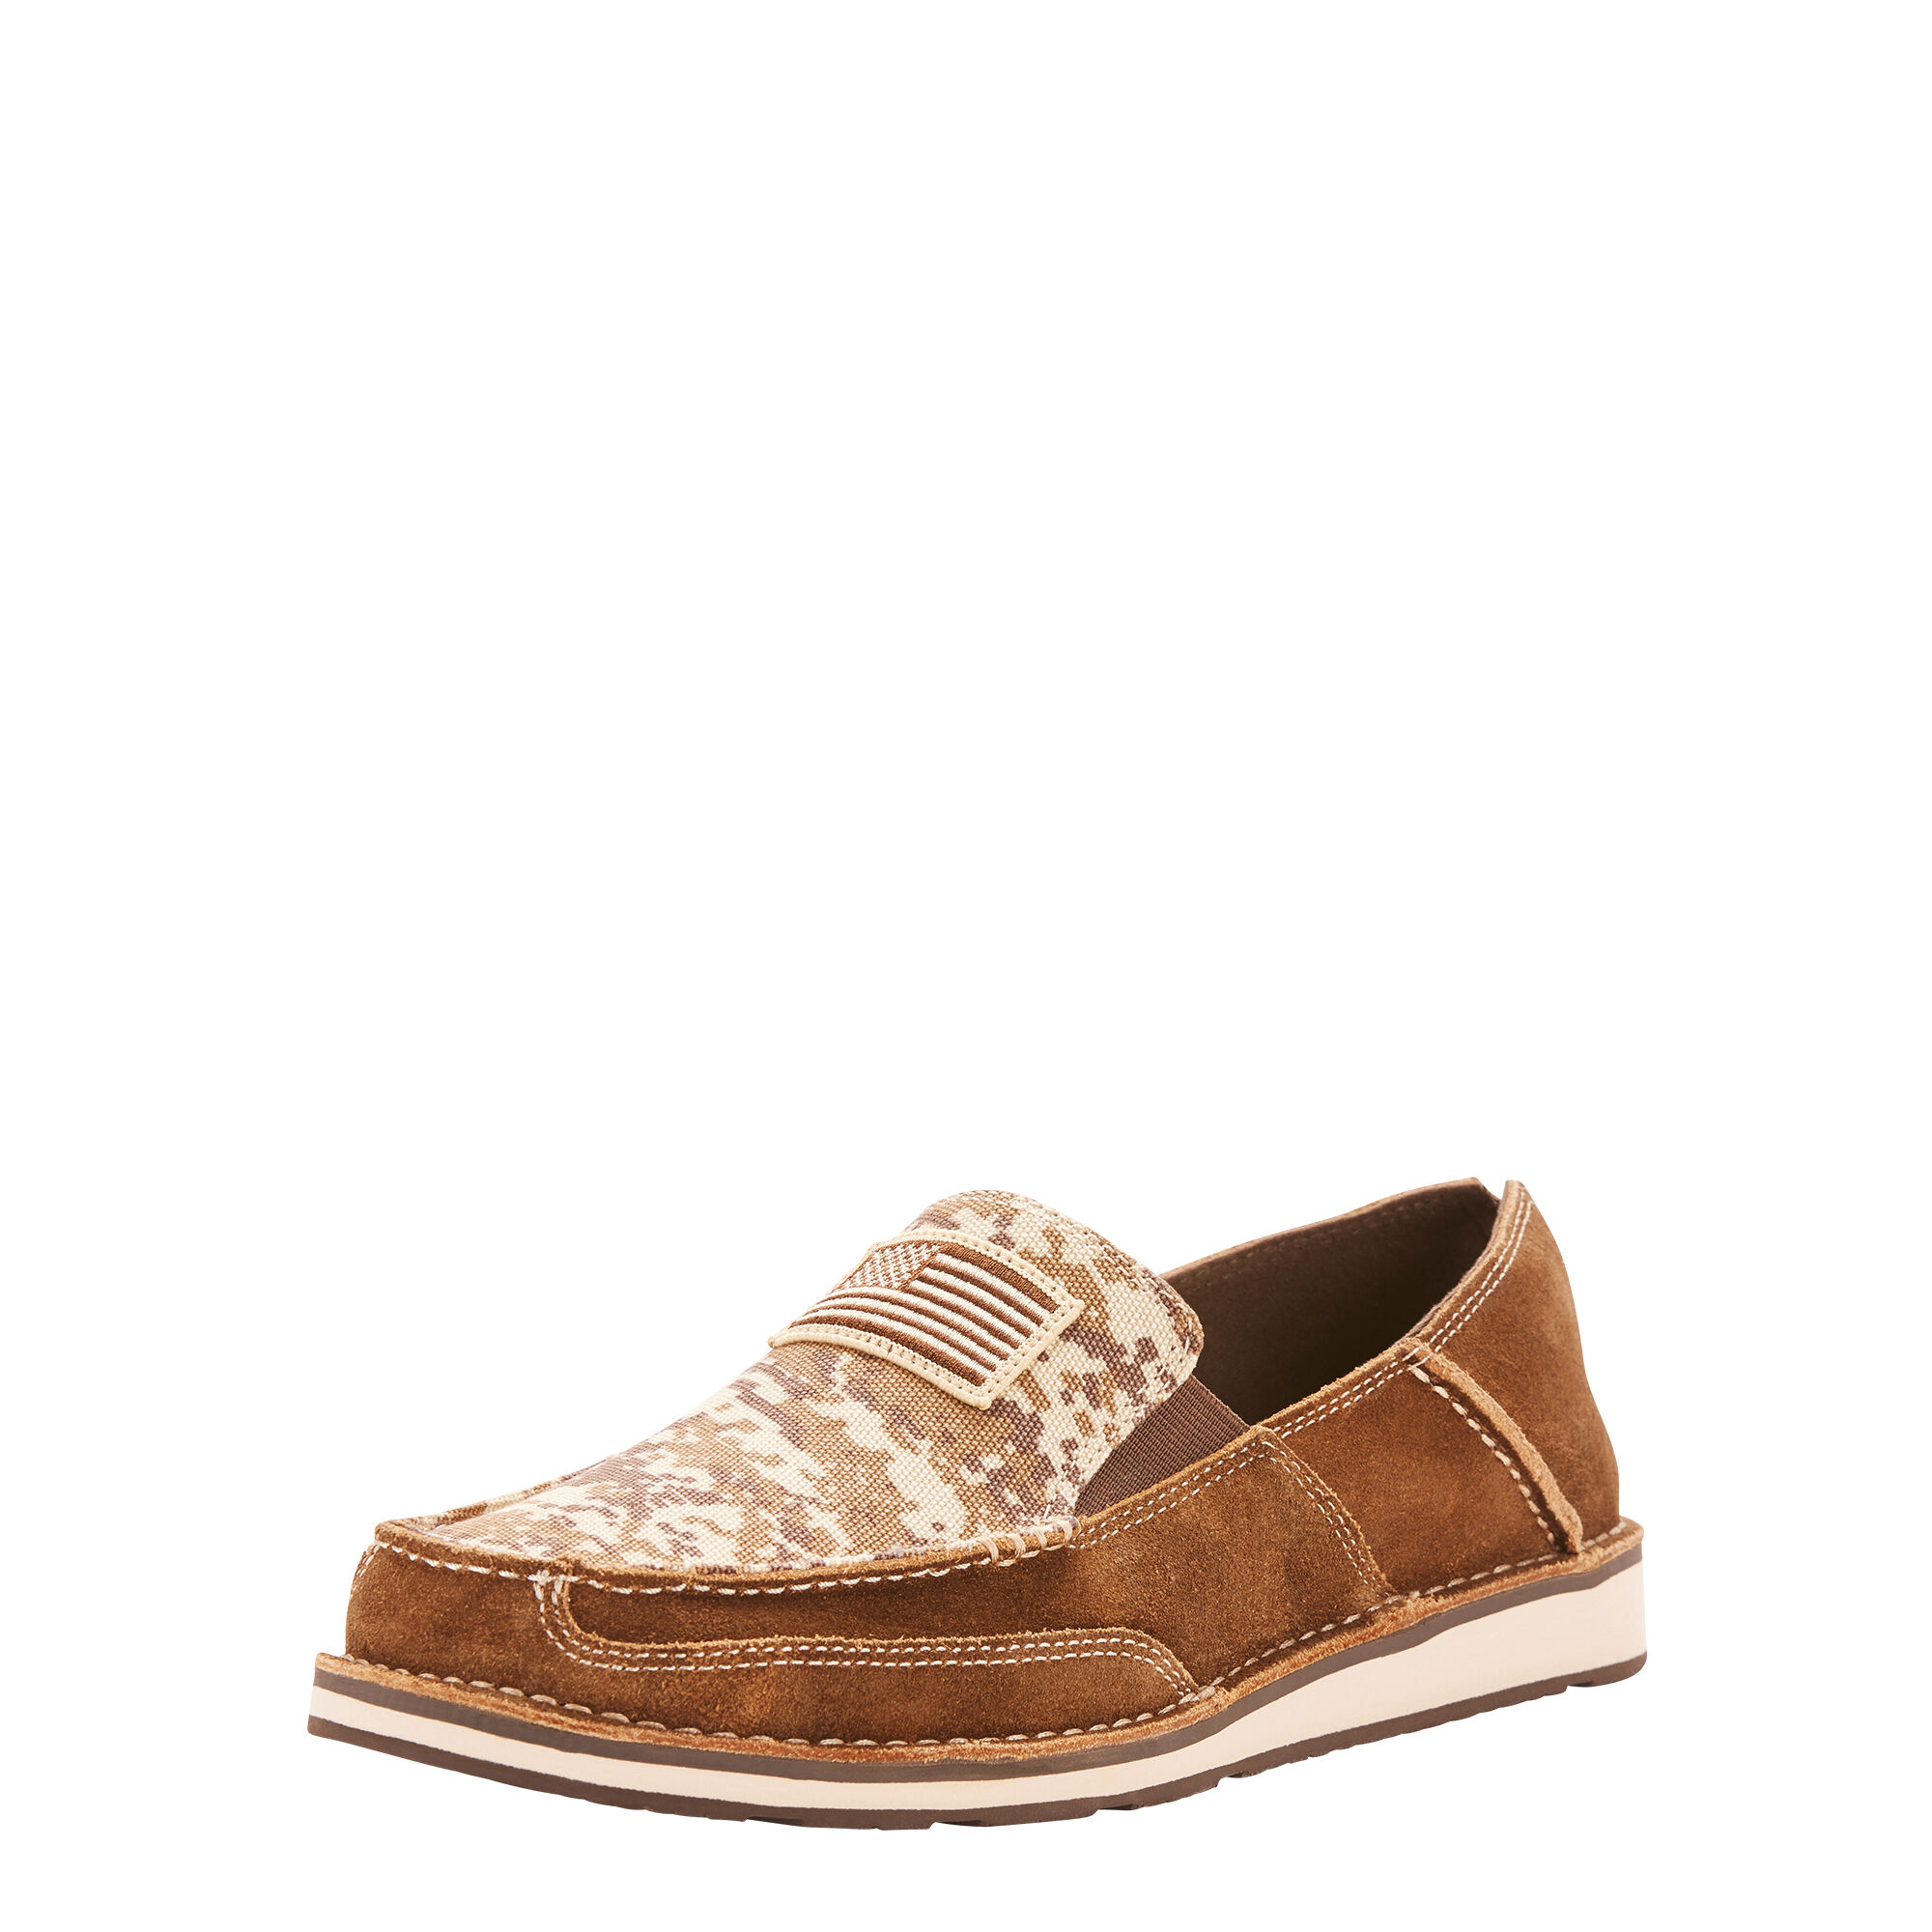 Ariat Footwear And amp; Sale Clearance On Clothing Apparel araSfwq